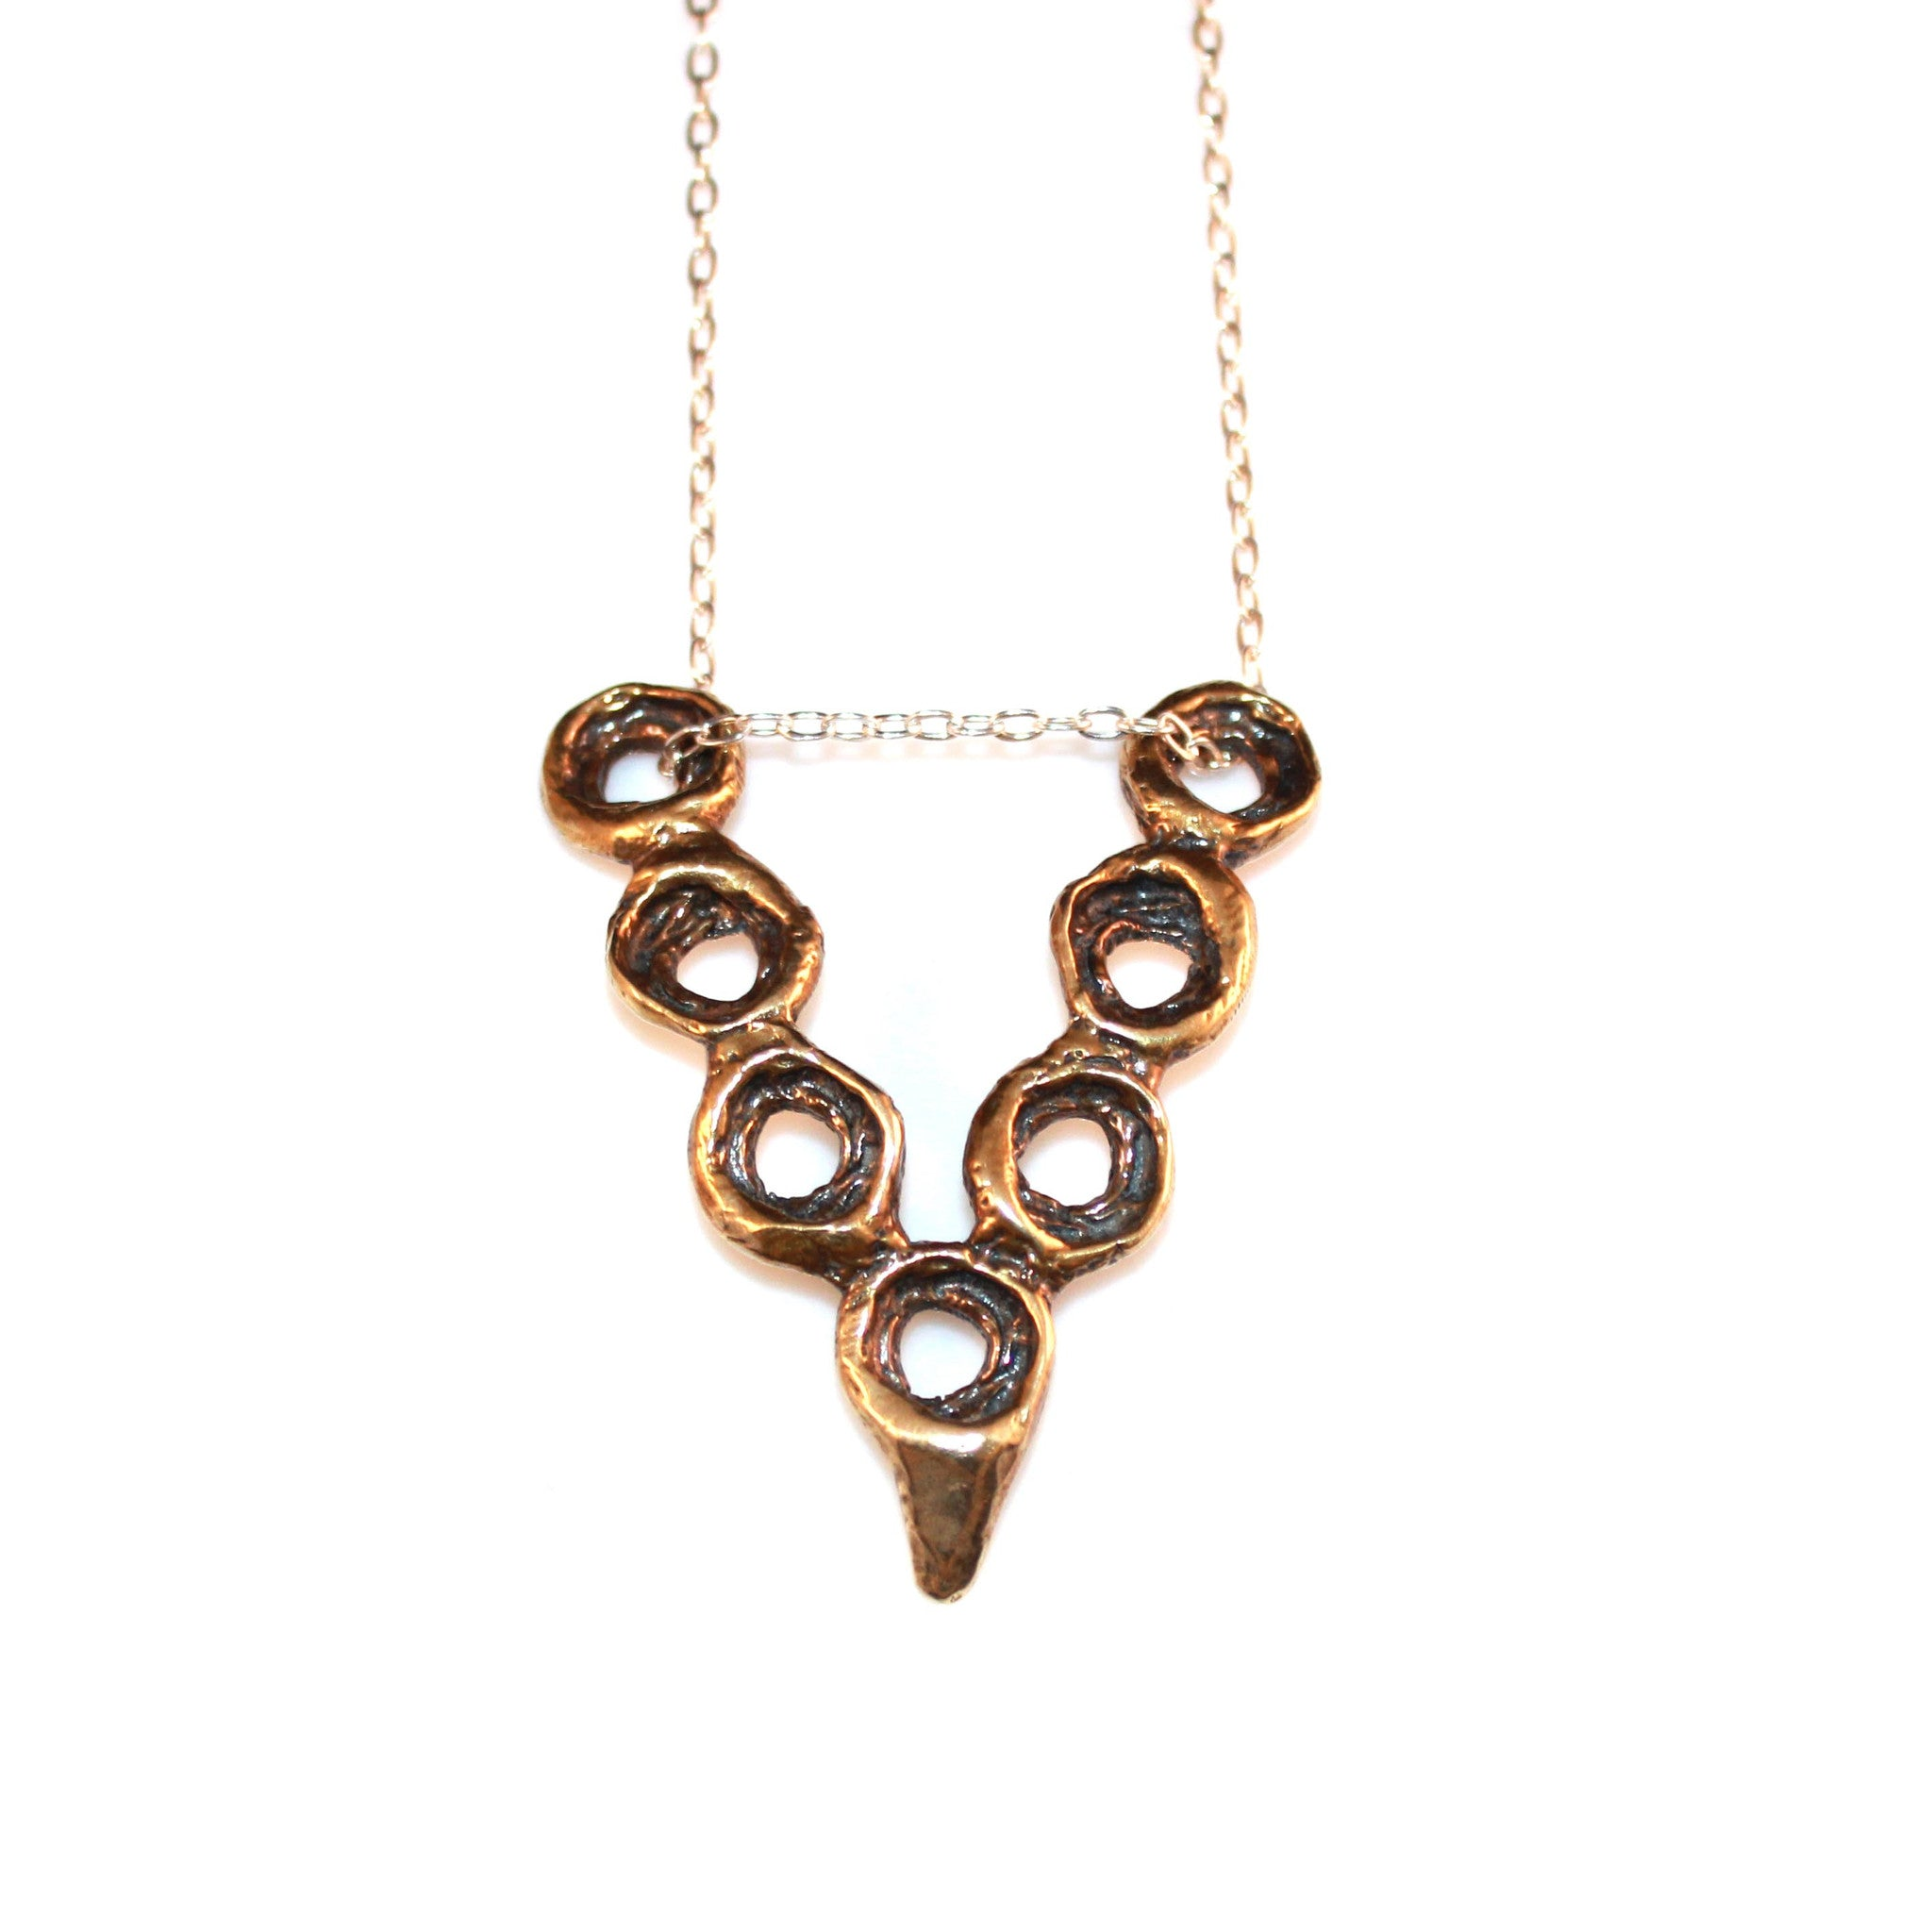 Linara Necklace